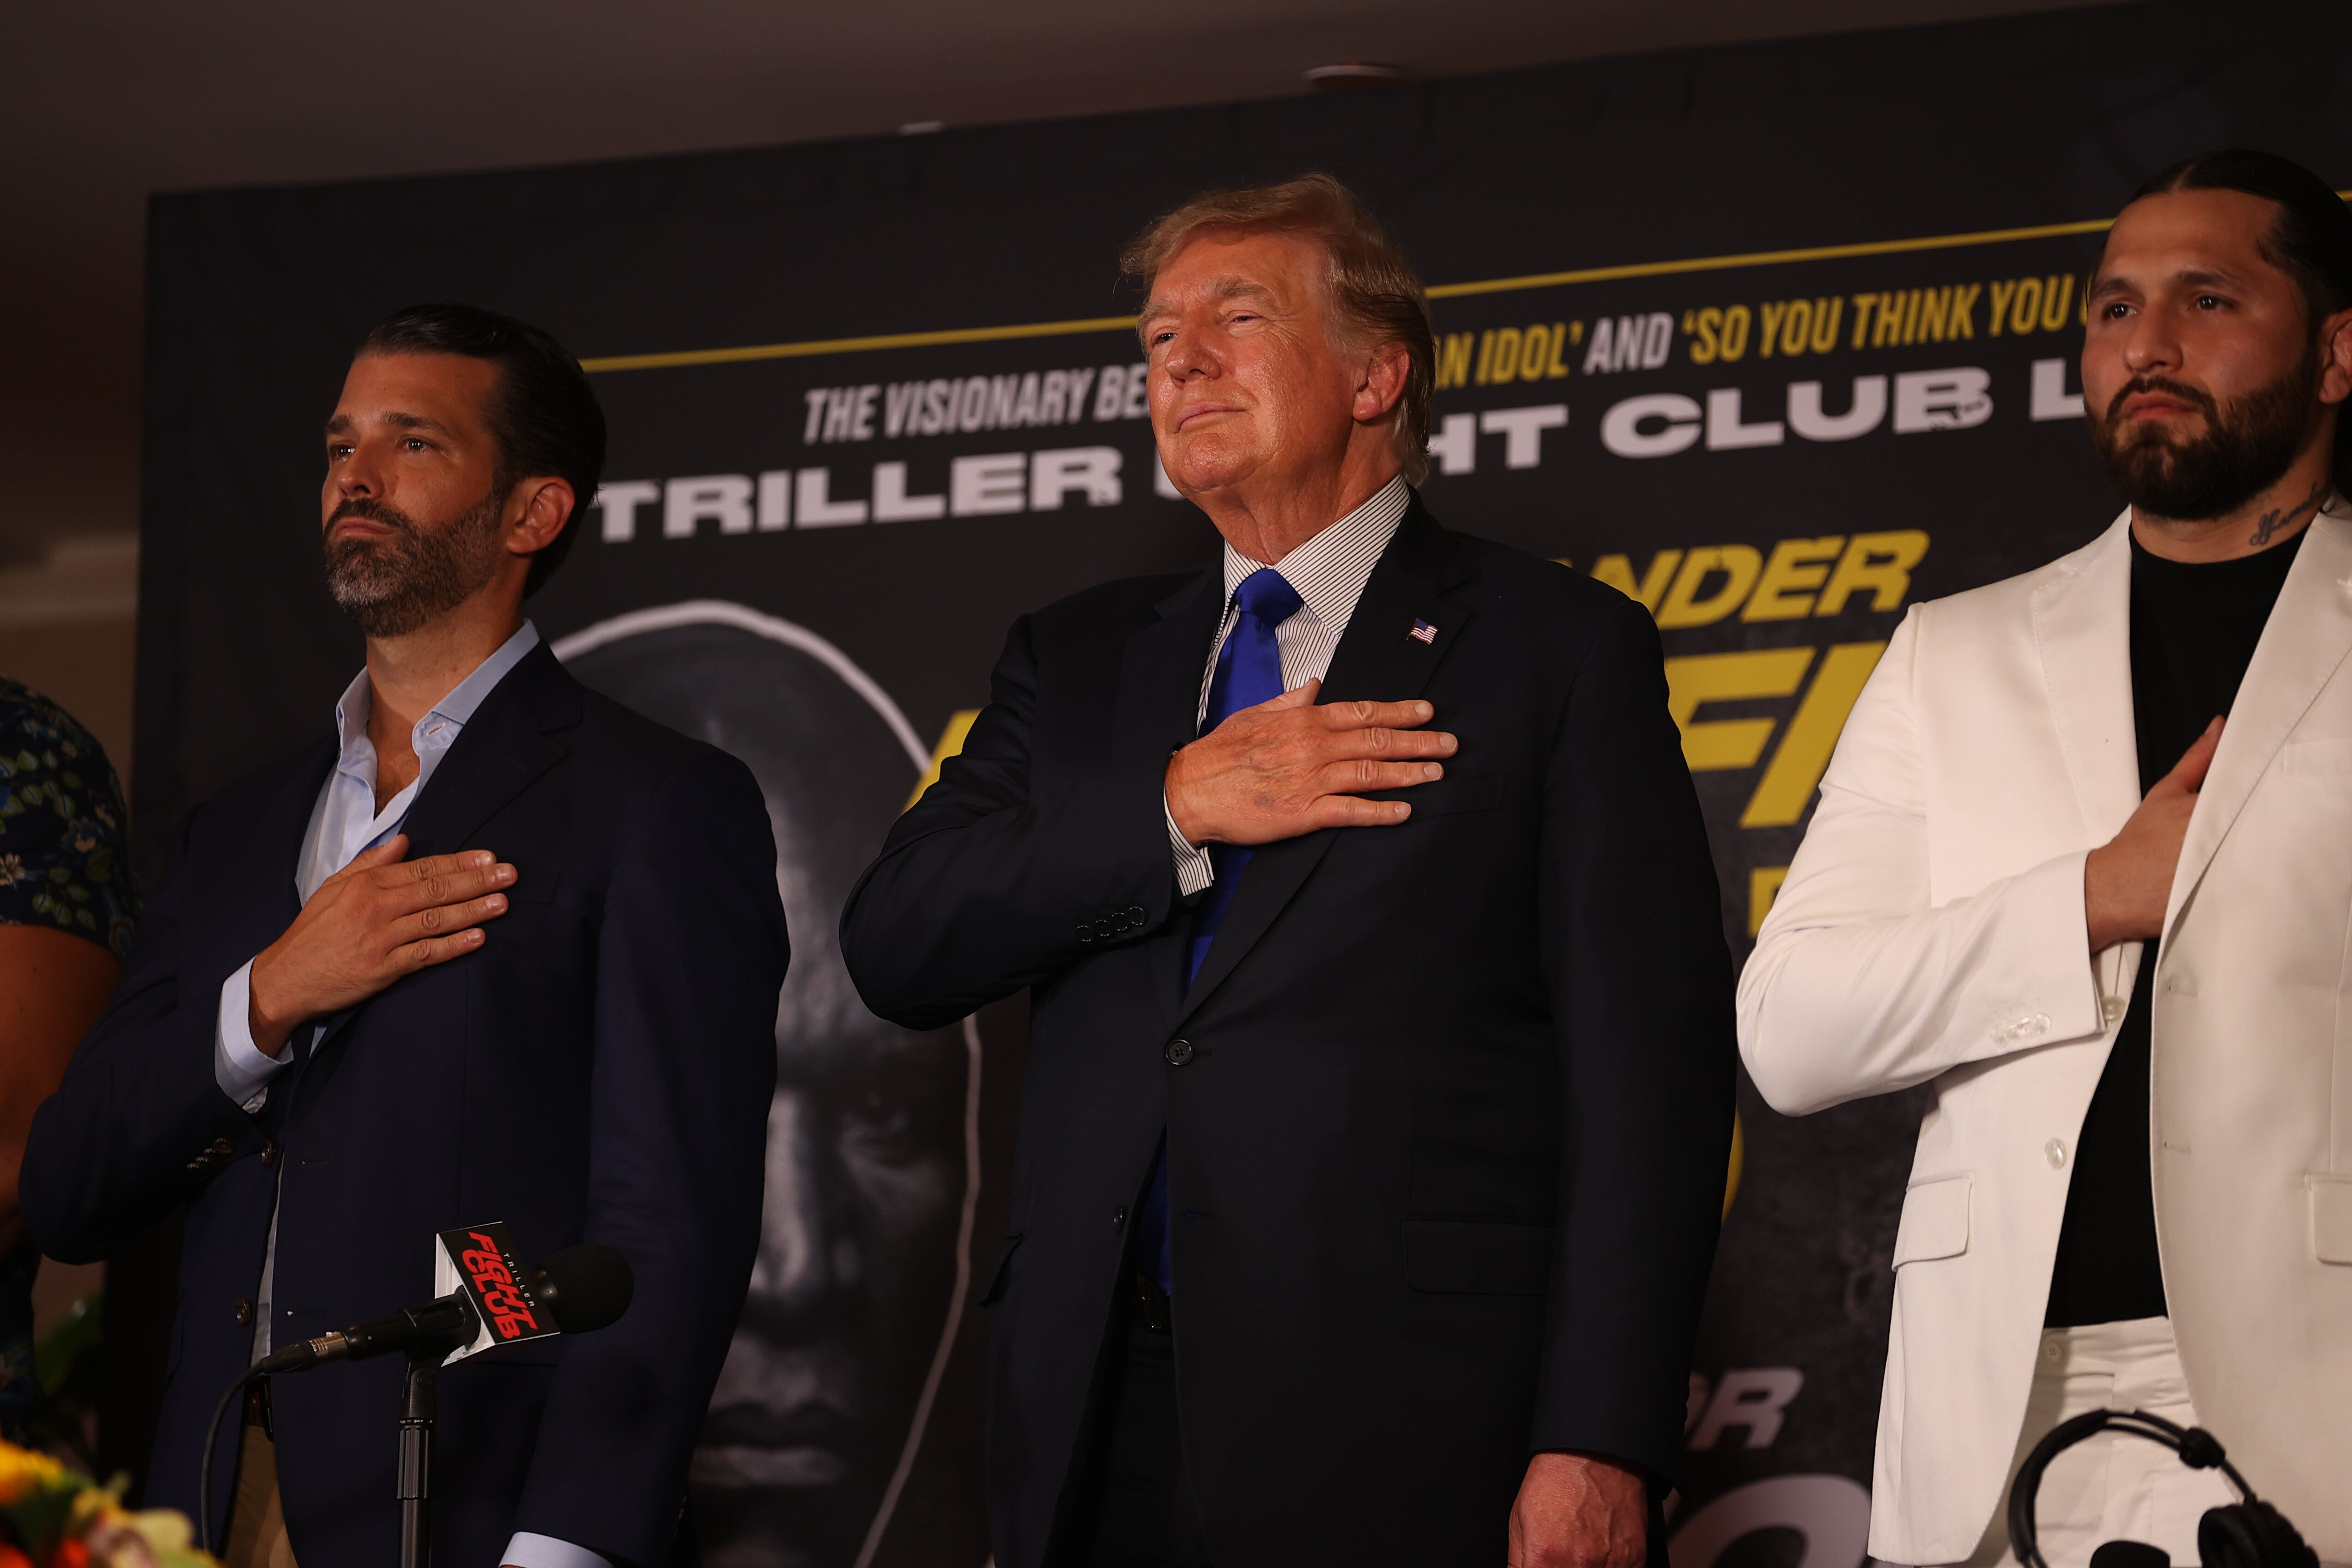 Donald Trump and Donald Trump, Jr., chimed in with analysis for boxing matches in Florida.